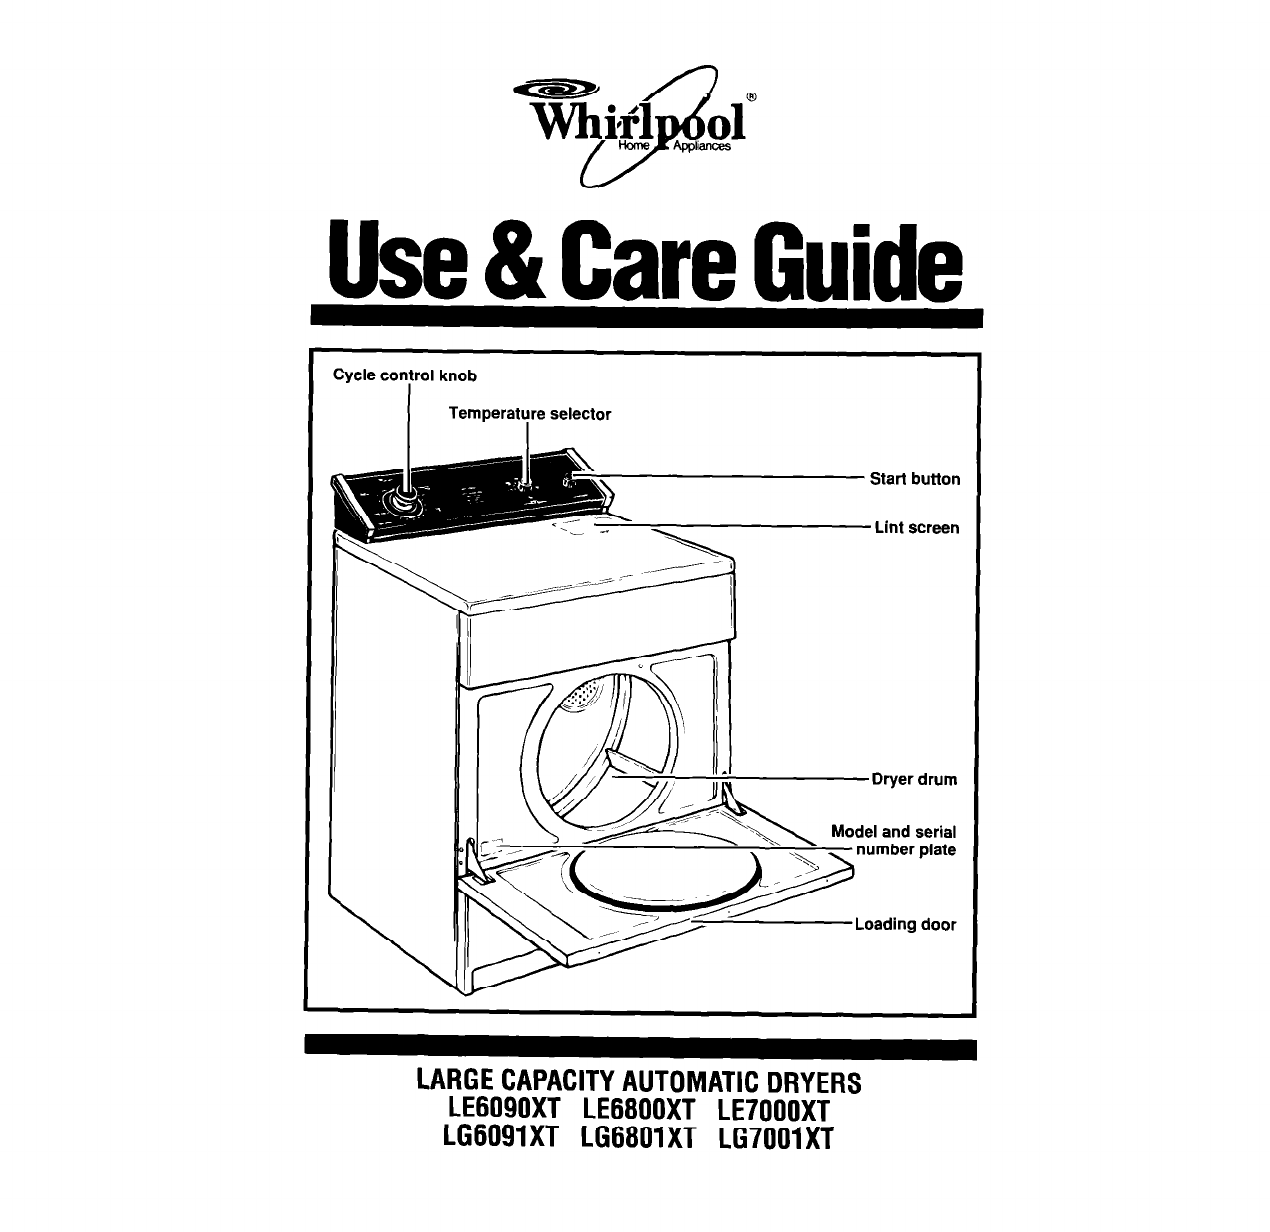 whirlpool clothes dryer lg7001xt user guide